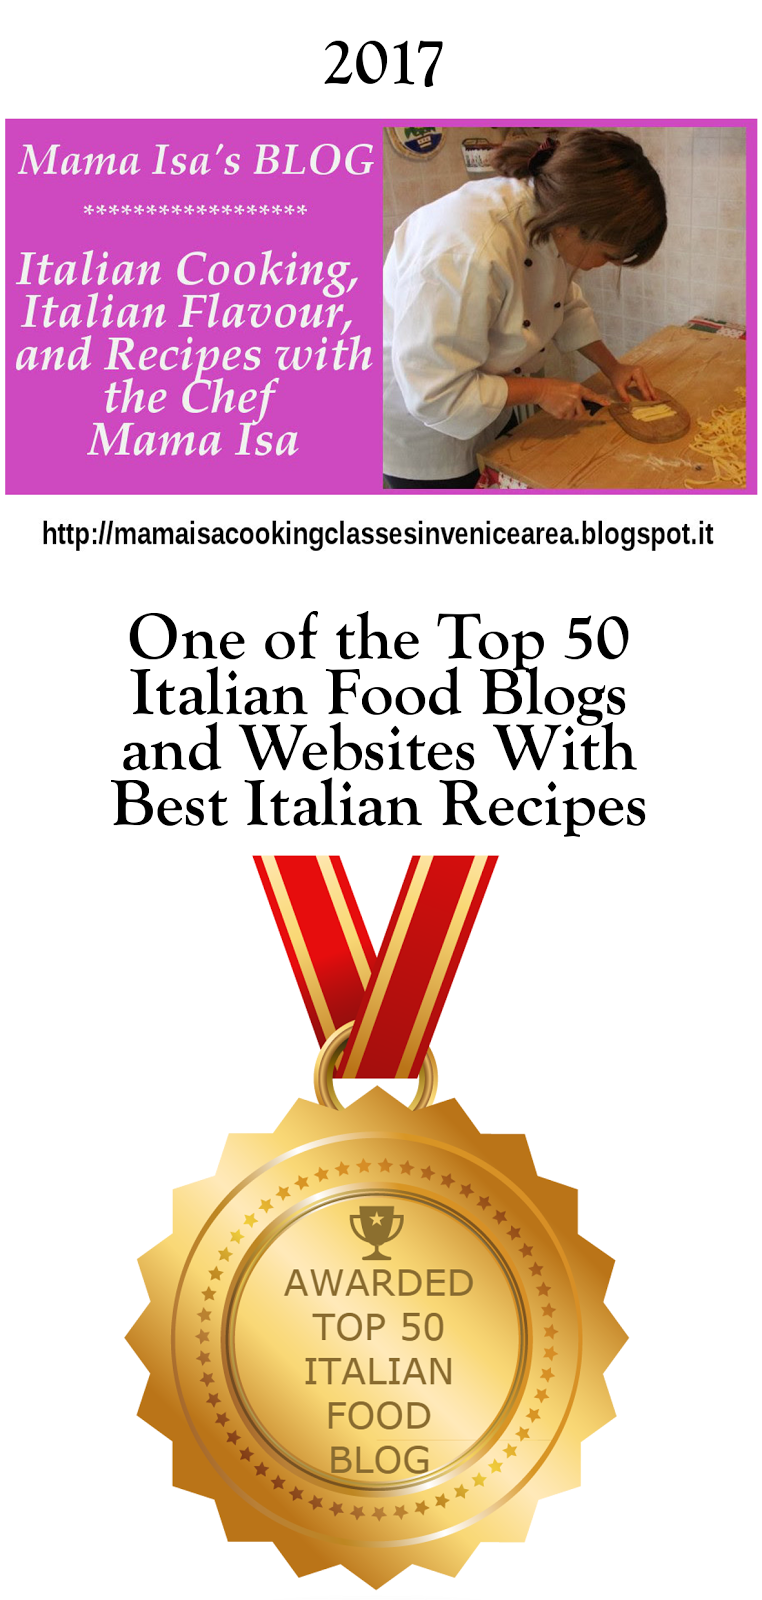 2017 Mama Isa's Blog - One of the top 50 Italian Food Blog